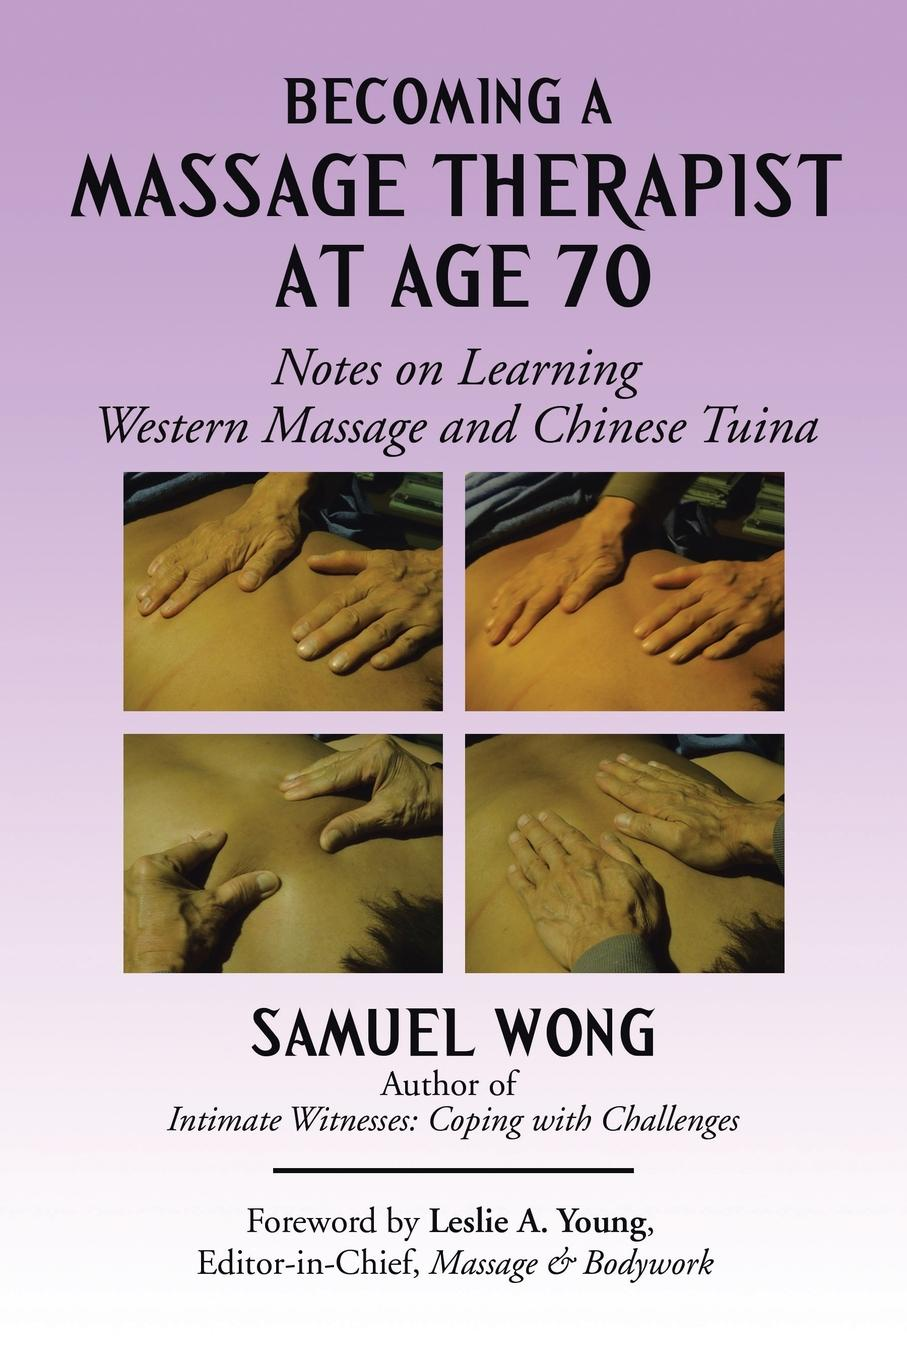 Samuel Wong Becoming a Massage Therapist at Age 70. Notes on Learning Western Massage and Chinese Tuina 12cups chinese medical vacuum body cupping massage set portable health massage therapy kit